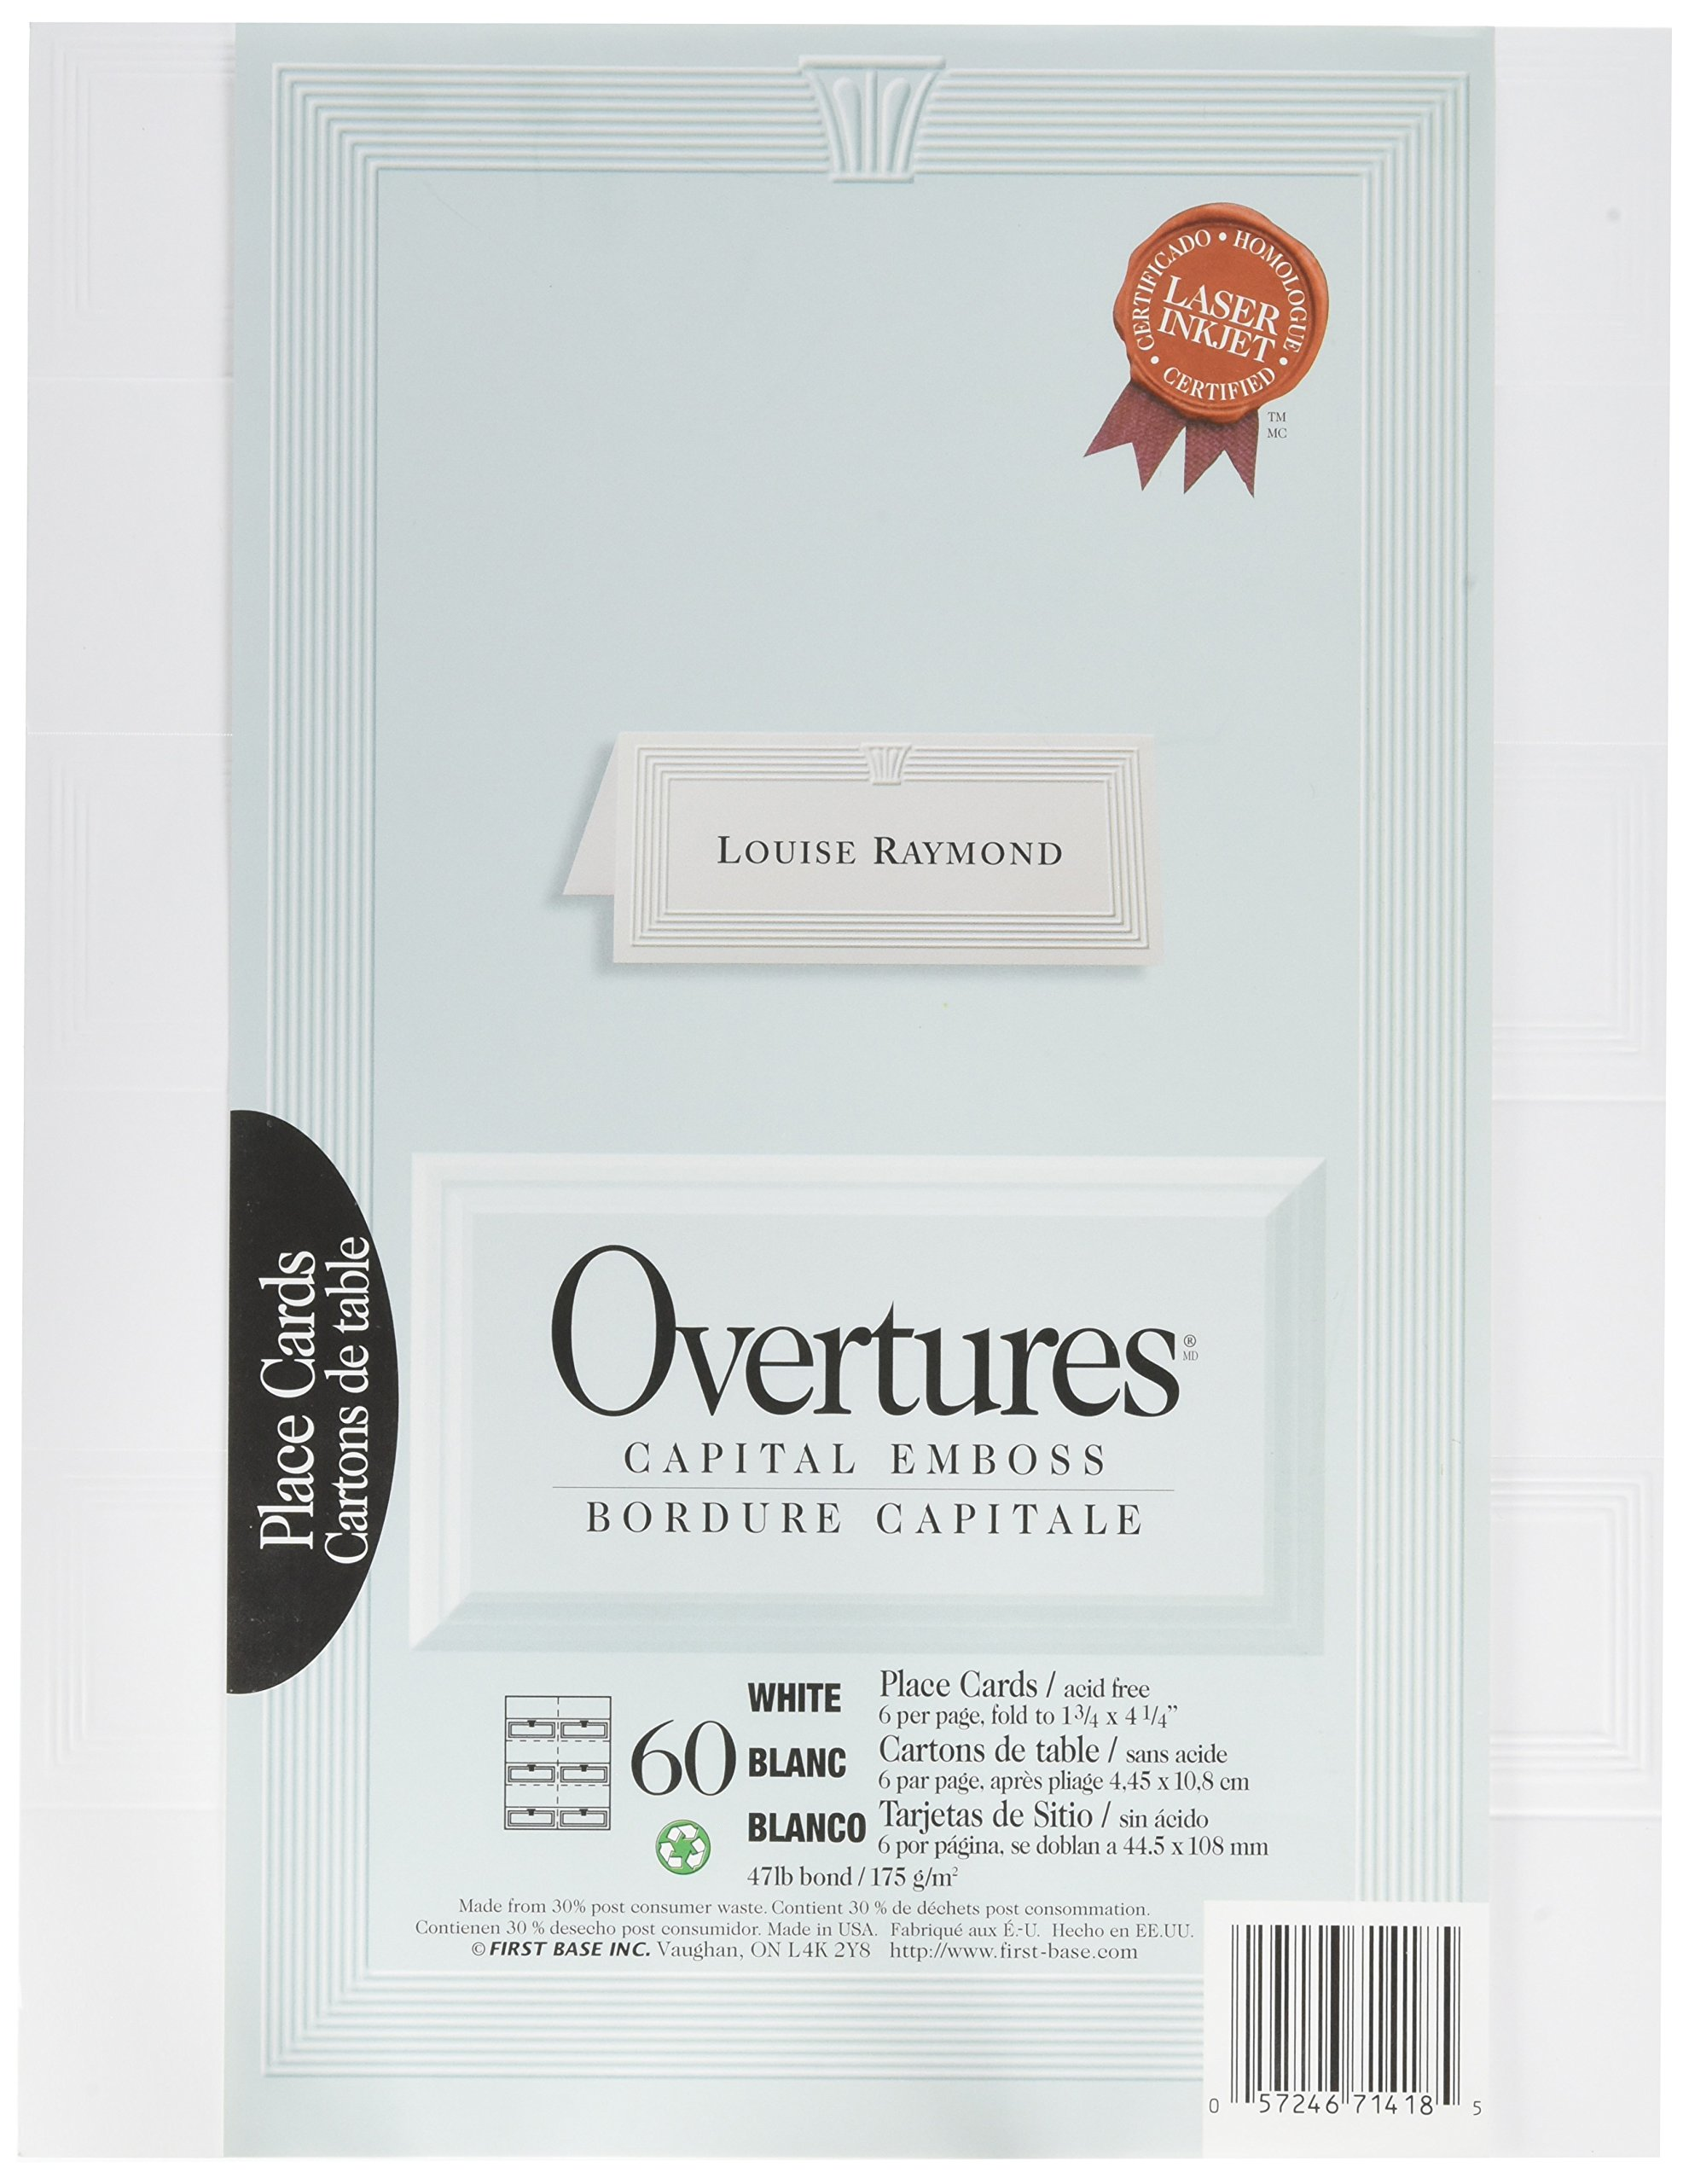 St. James Overtures Capital Emboss White Place Cards, Pack of 60